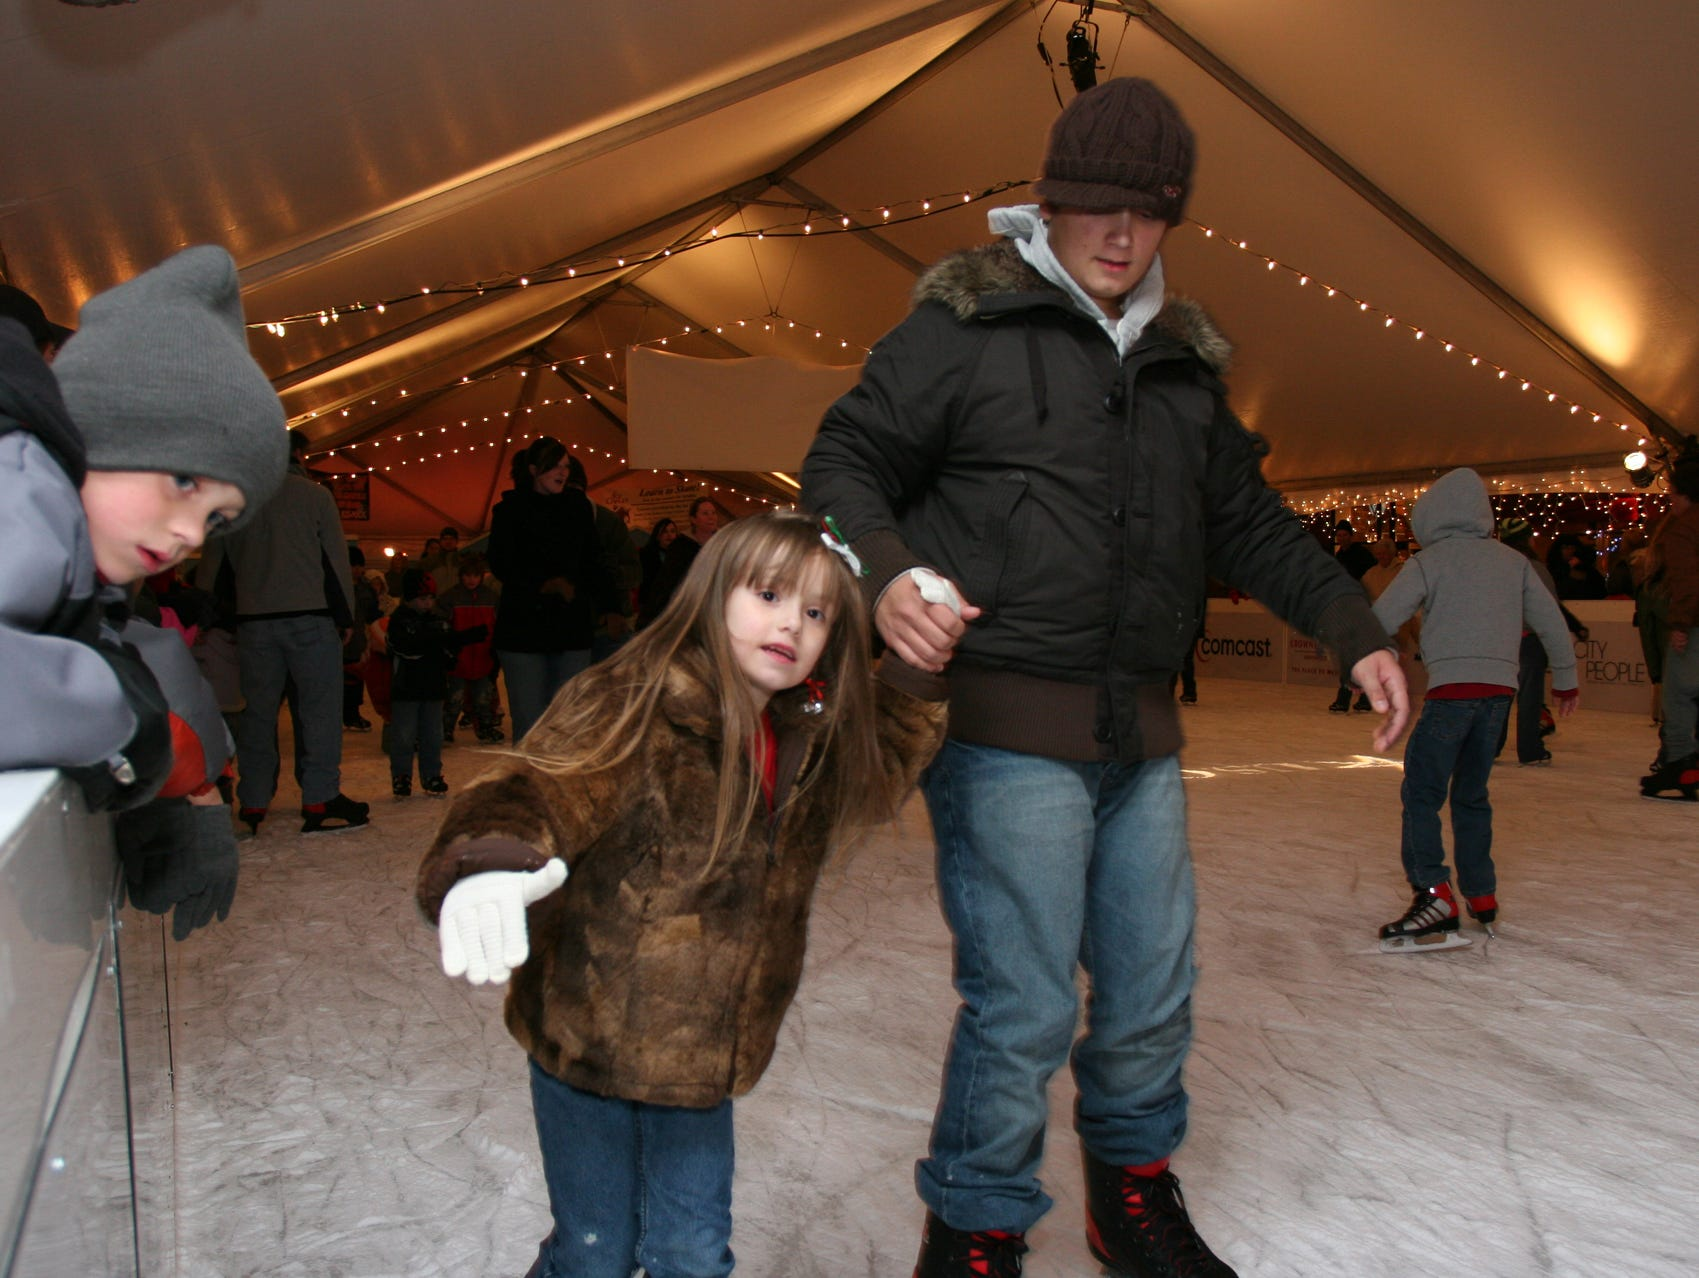 Amber Baker, 6, ice skates with her brother Jason Higgs, 15, during the kick off for Christmas in the City on Friday in Market Square. Tyler Pearcy, 7, watches the action at left.